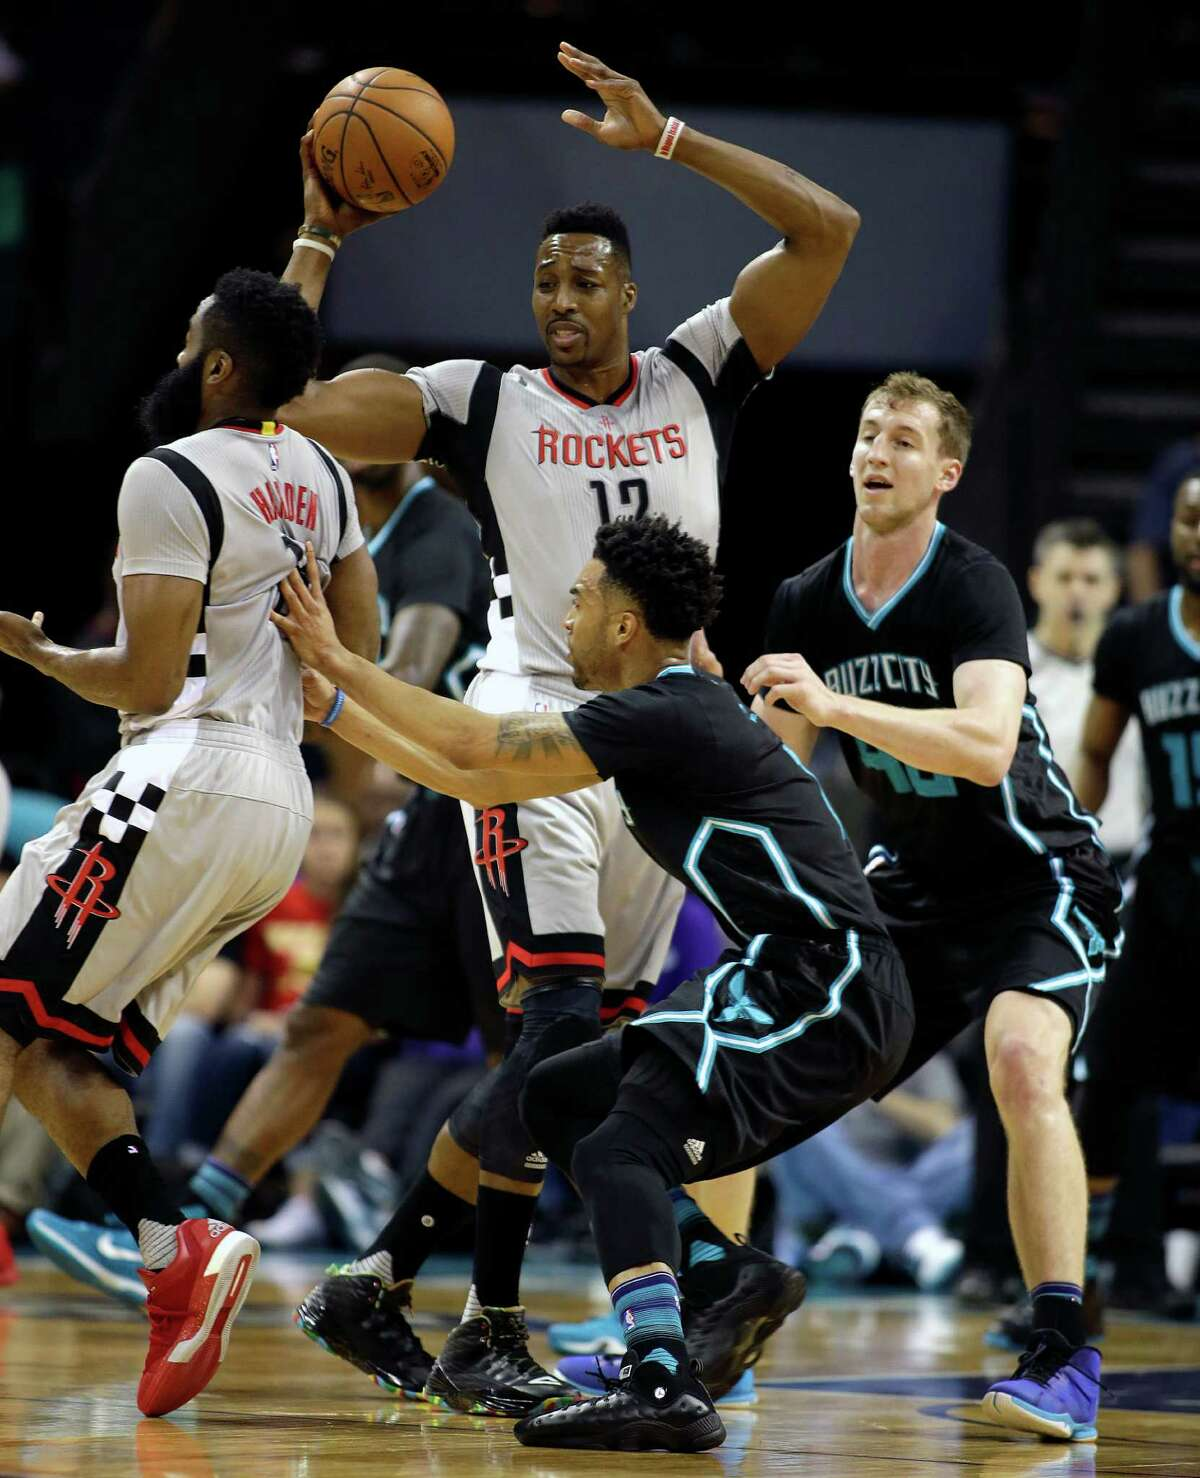 Houston Rockets' Dwight Howard, center, looks confused as he looks to pass the ball to an open teammate as he is guarded by Charlotte Hornets' Cody Zeller, right, during the first half of an NBA basketball game in Charlotte, N.C., Saturday, March 12, 2016. Houston Rockets' James Harden, left, tries to find some spacing as he his pushed in the back by Charlotte Hornets' Courtney Lee, middle. The Hornets won 125-109.